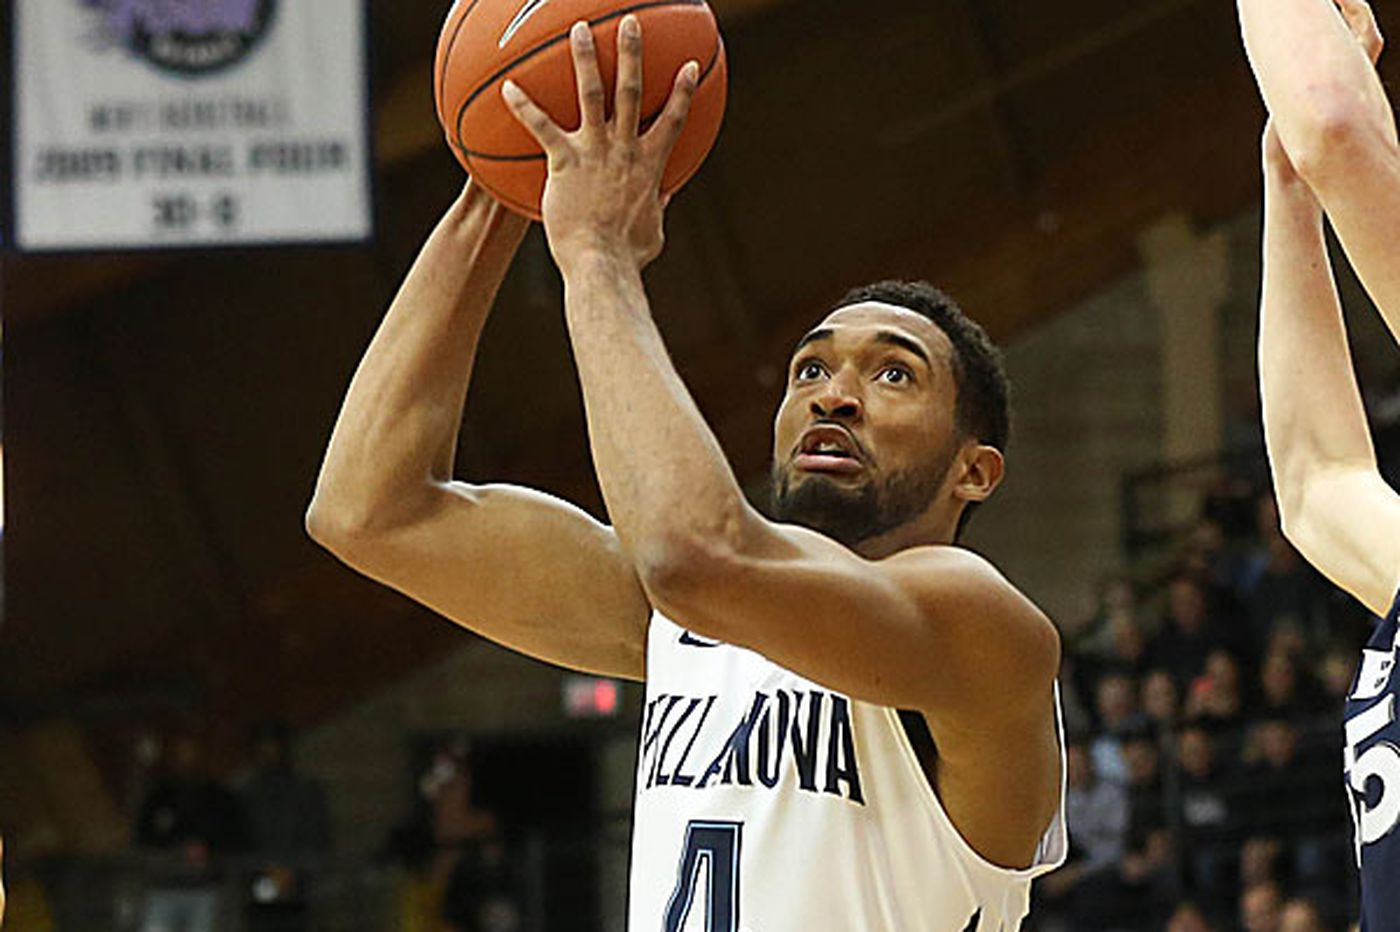 Hilliard in line for Big East honor